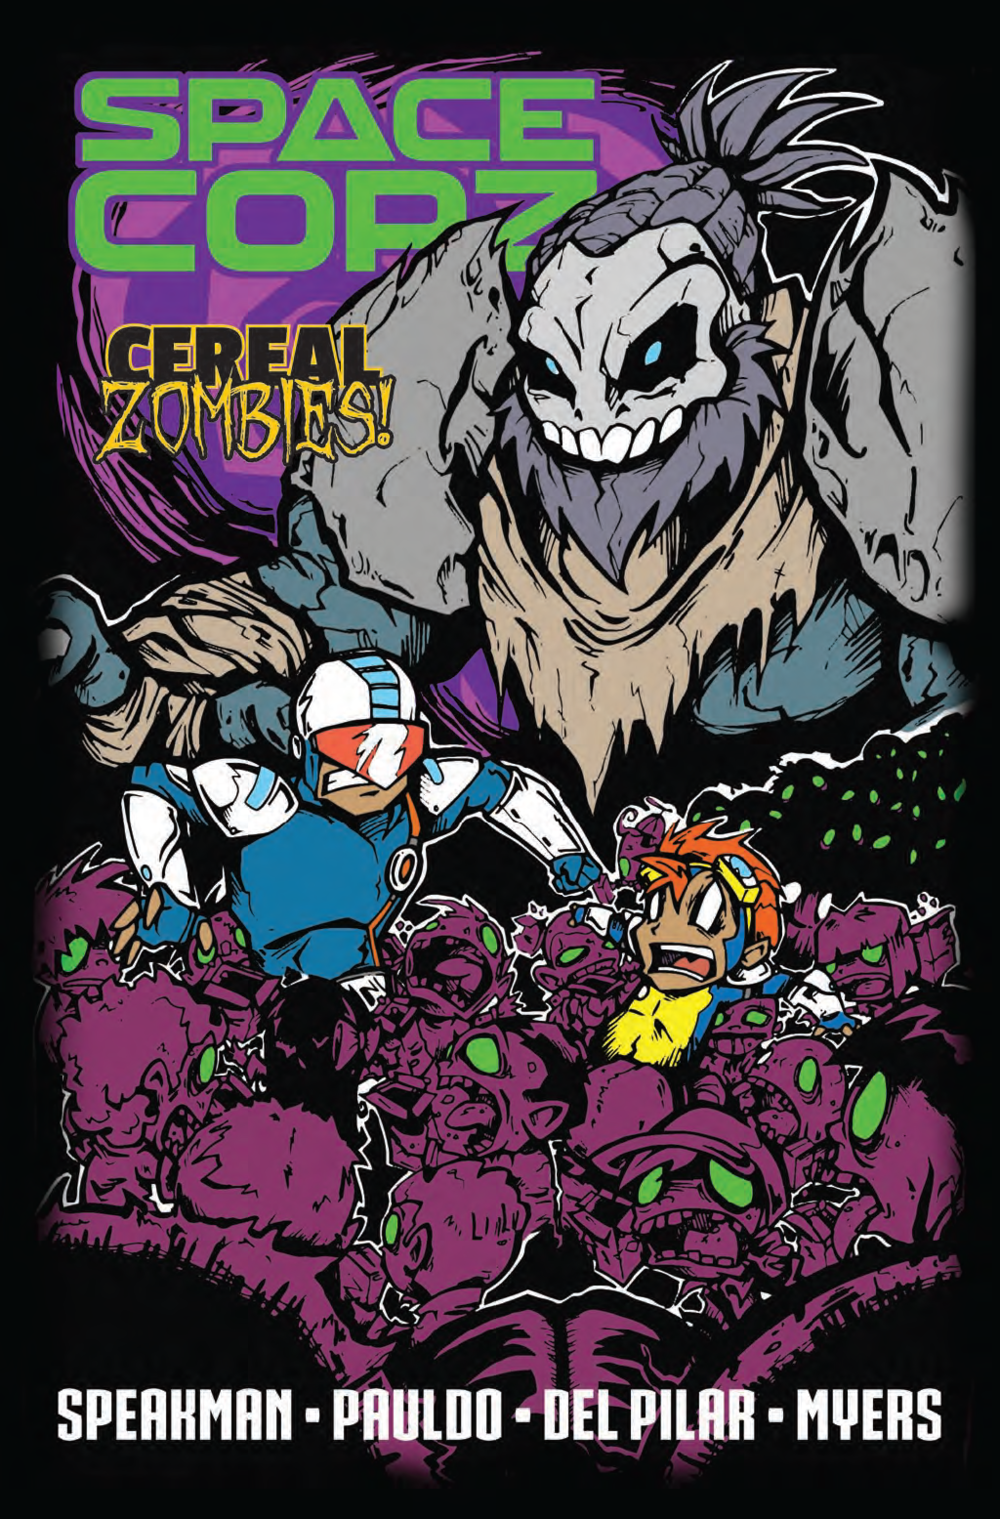 Space Copz Cereal Zombies-1.png